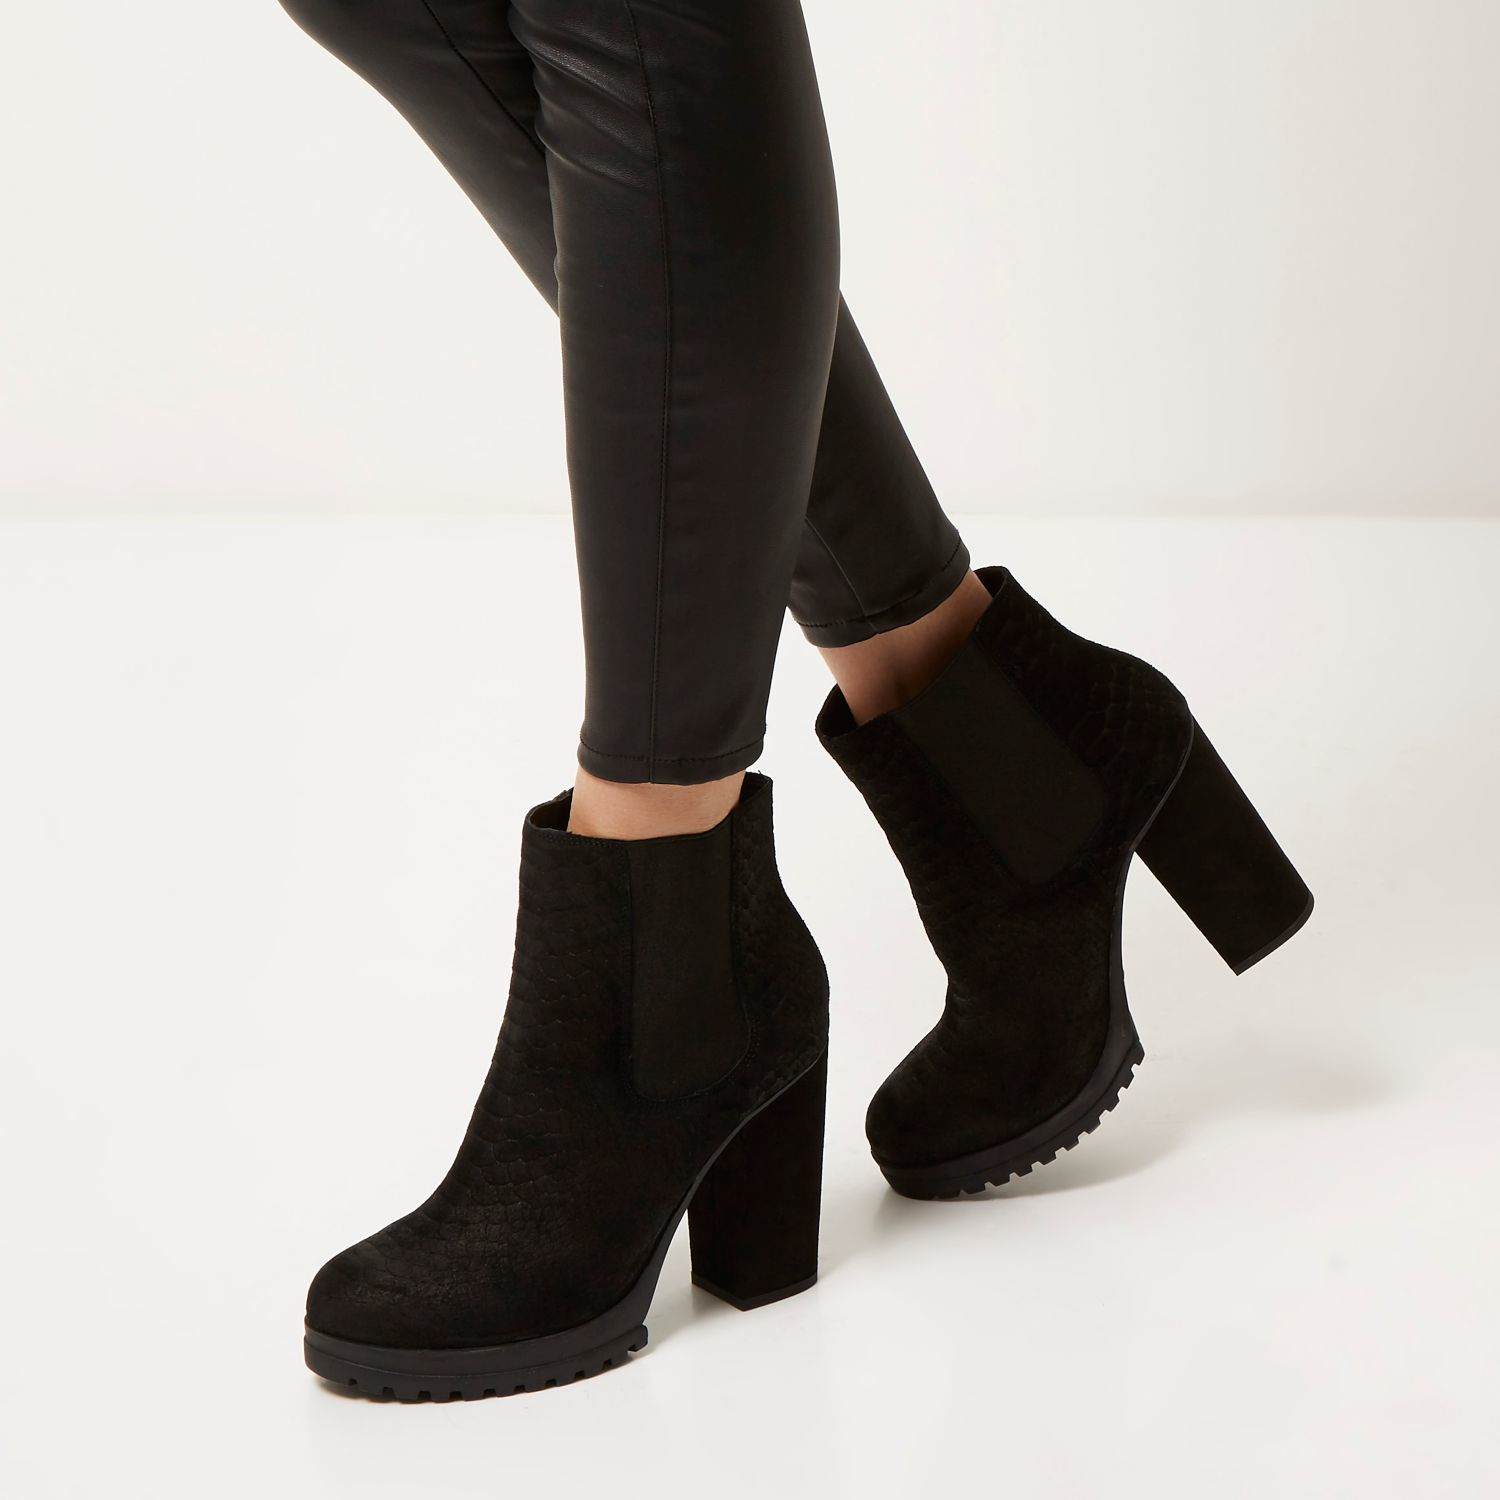 Black Heeled Ankle Boots woiFGlj4